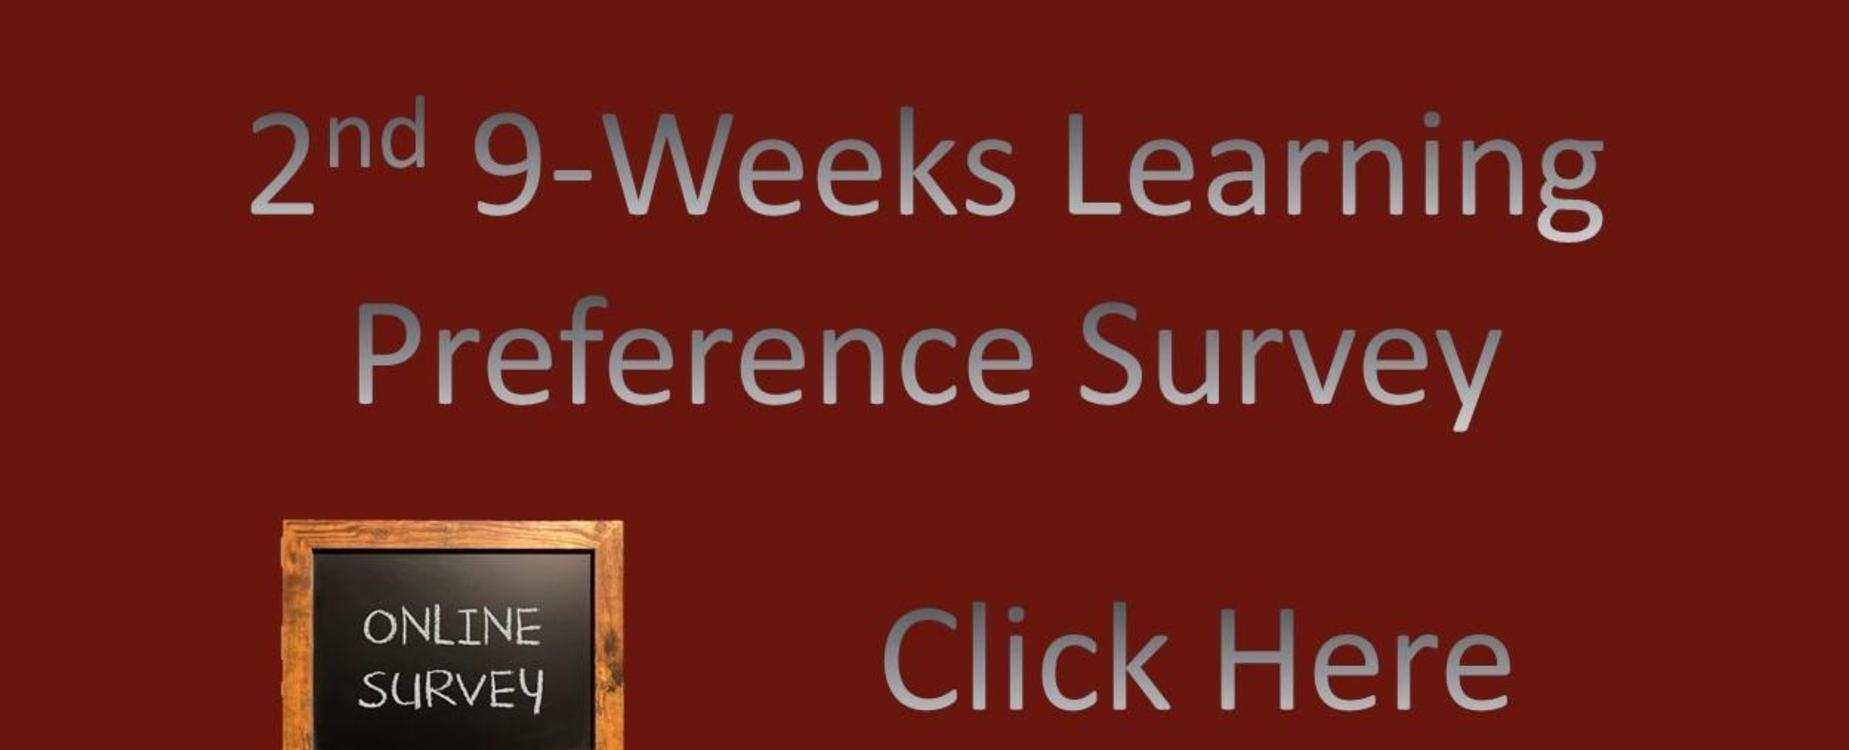 2nd 9 weeks Learning preference survey